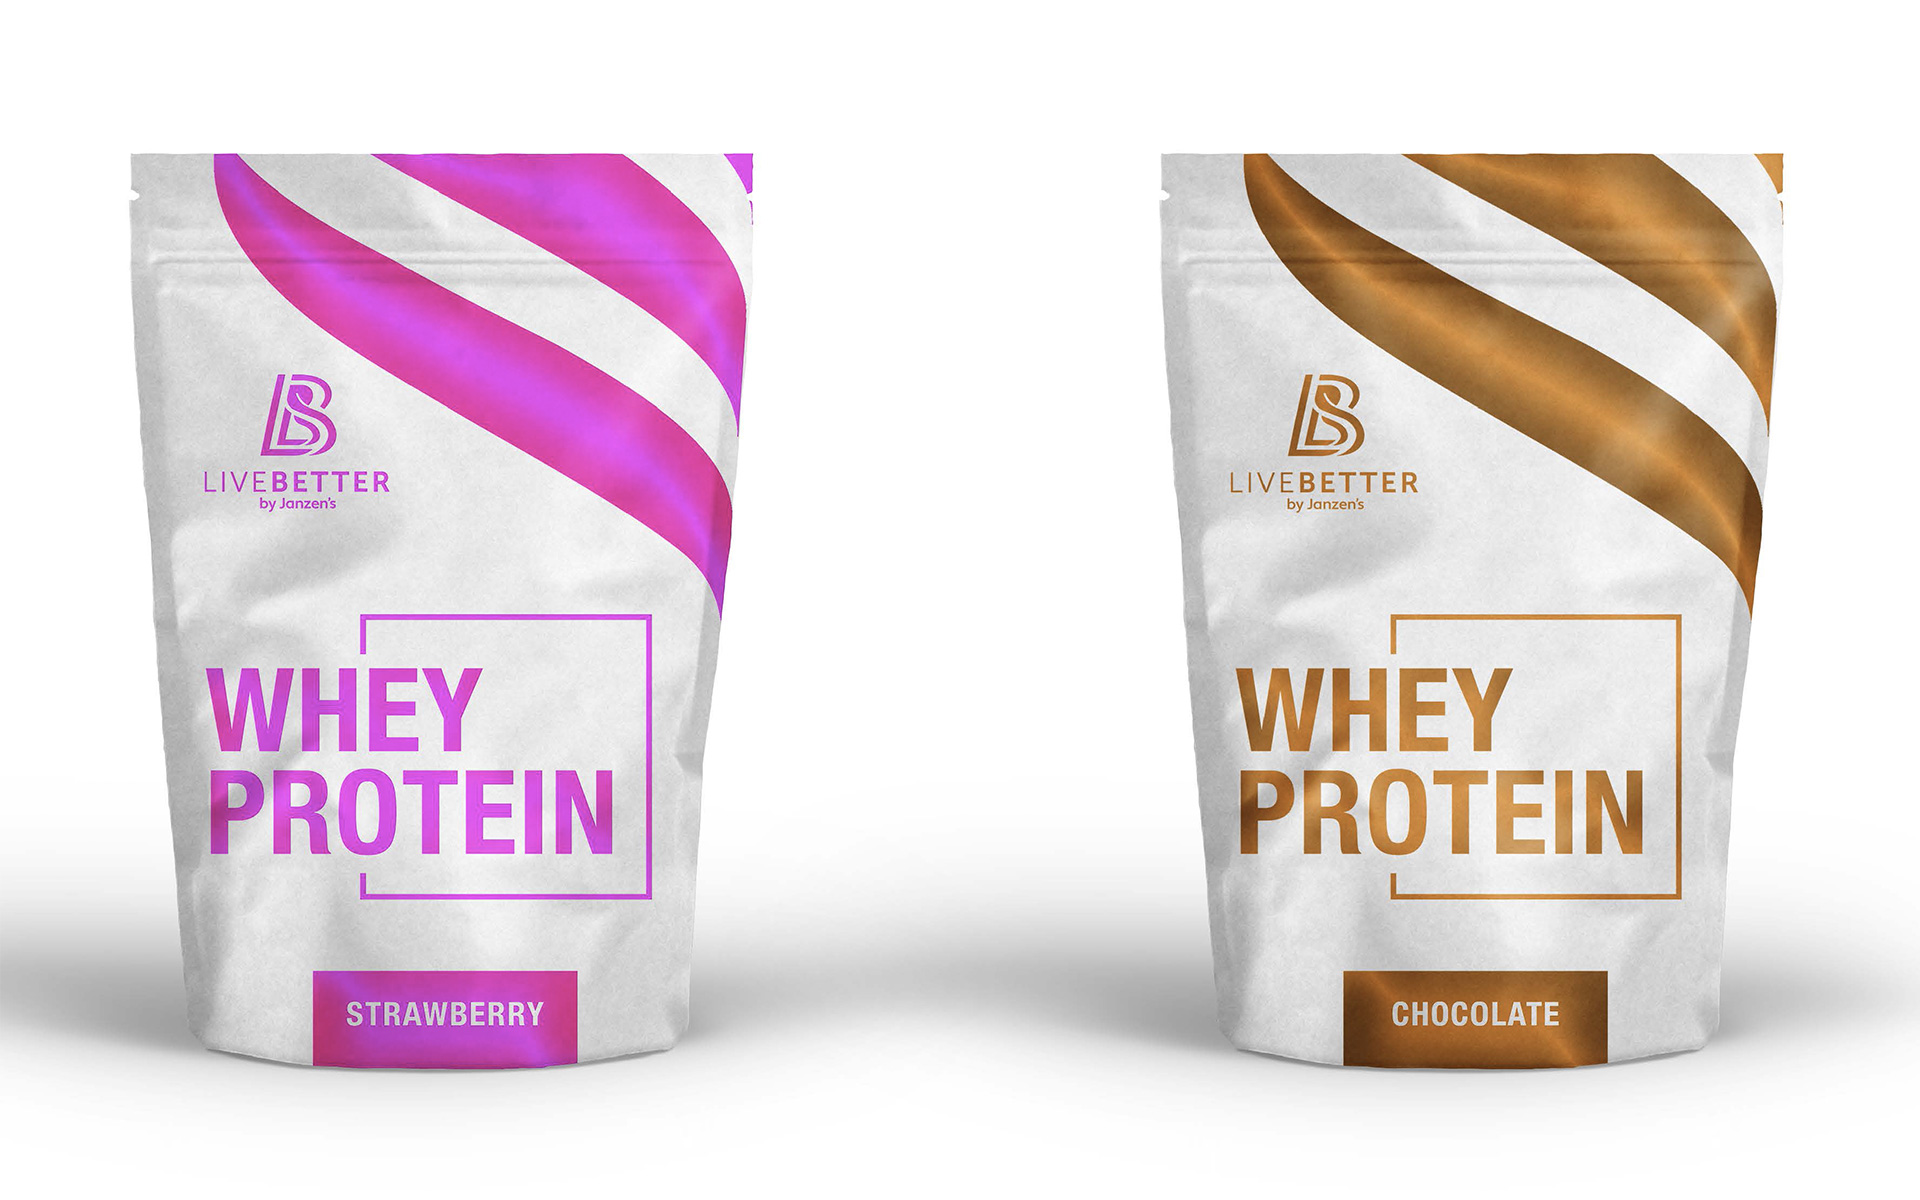 Live Better Whey Protein